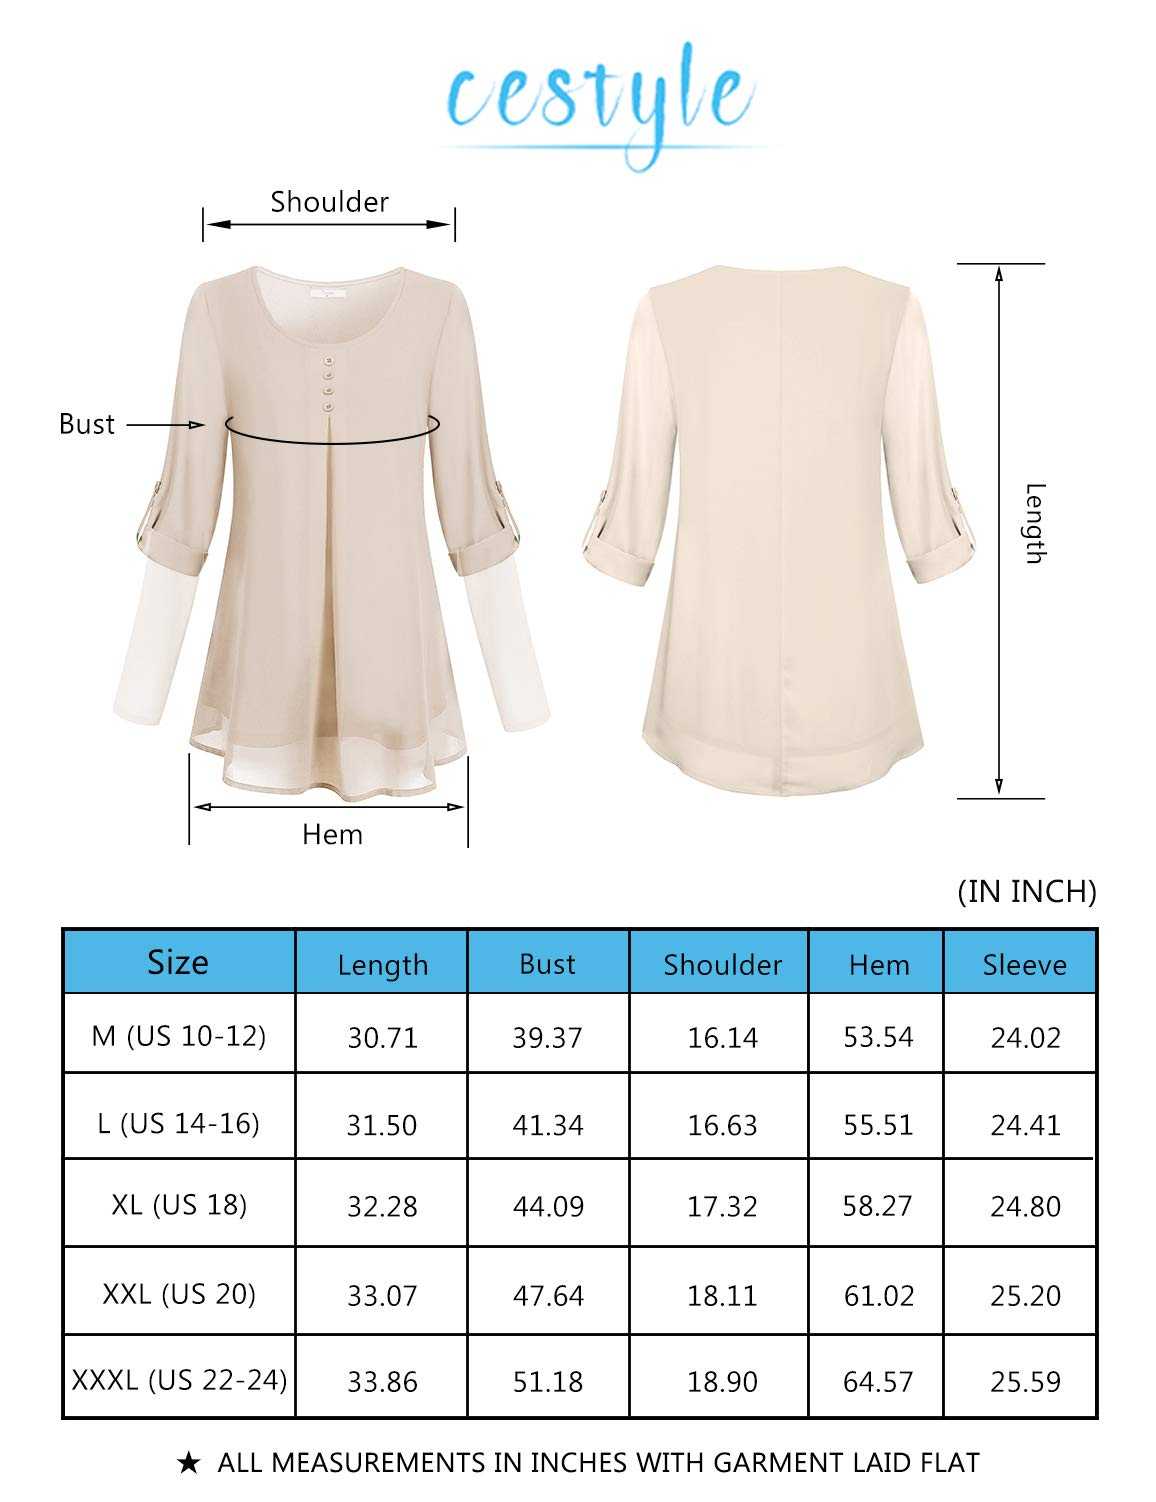 Cestyle Business Casual Tops For Women Juniors Sheer Rolled Up